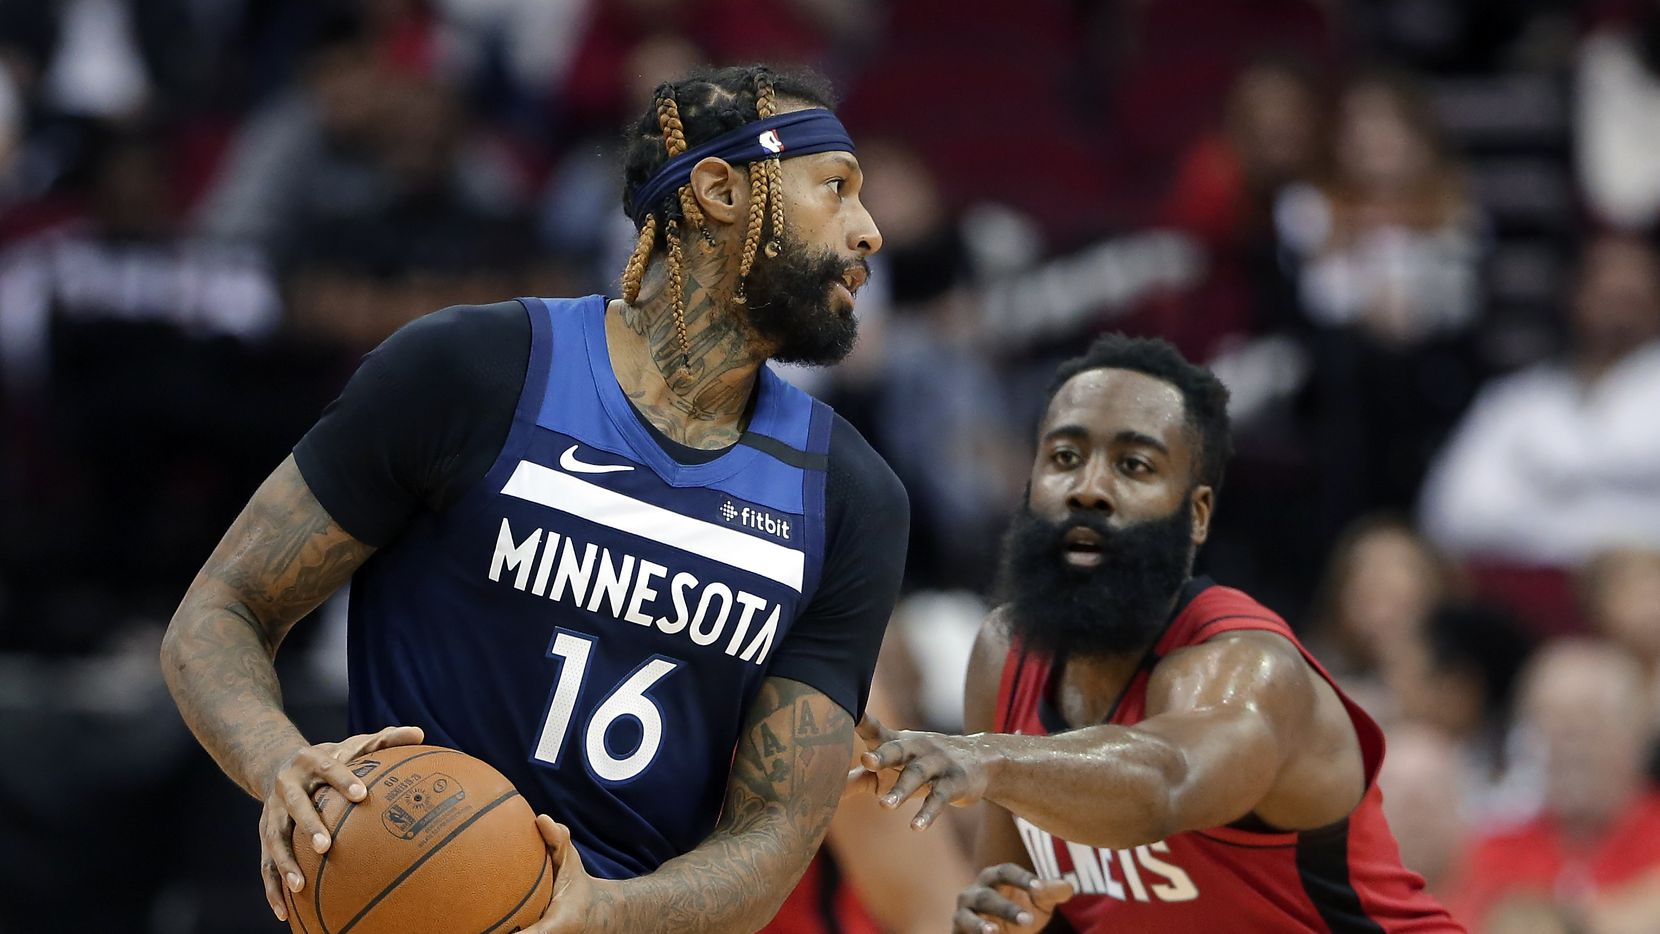 Minnesota Timberwolves forward James Johnson (16) looks to pass the ball while under pressure from Houston Rockets guard James Harden (13) during the second half of an NBA basketball game Tuesday, March 10, 2020, in Houston. (AP Photo/Michael Wyke)